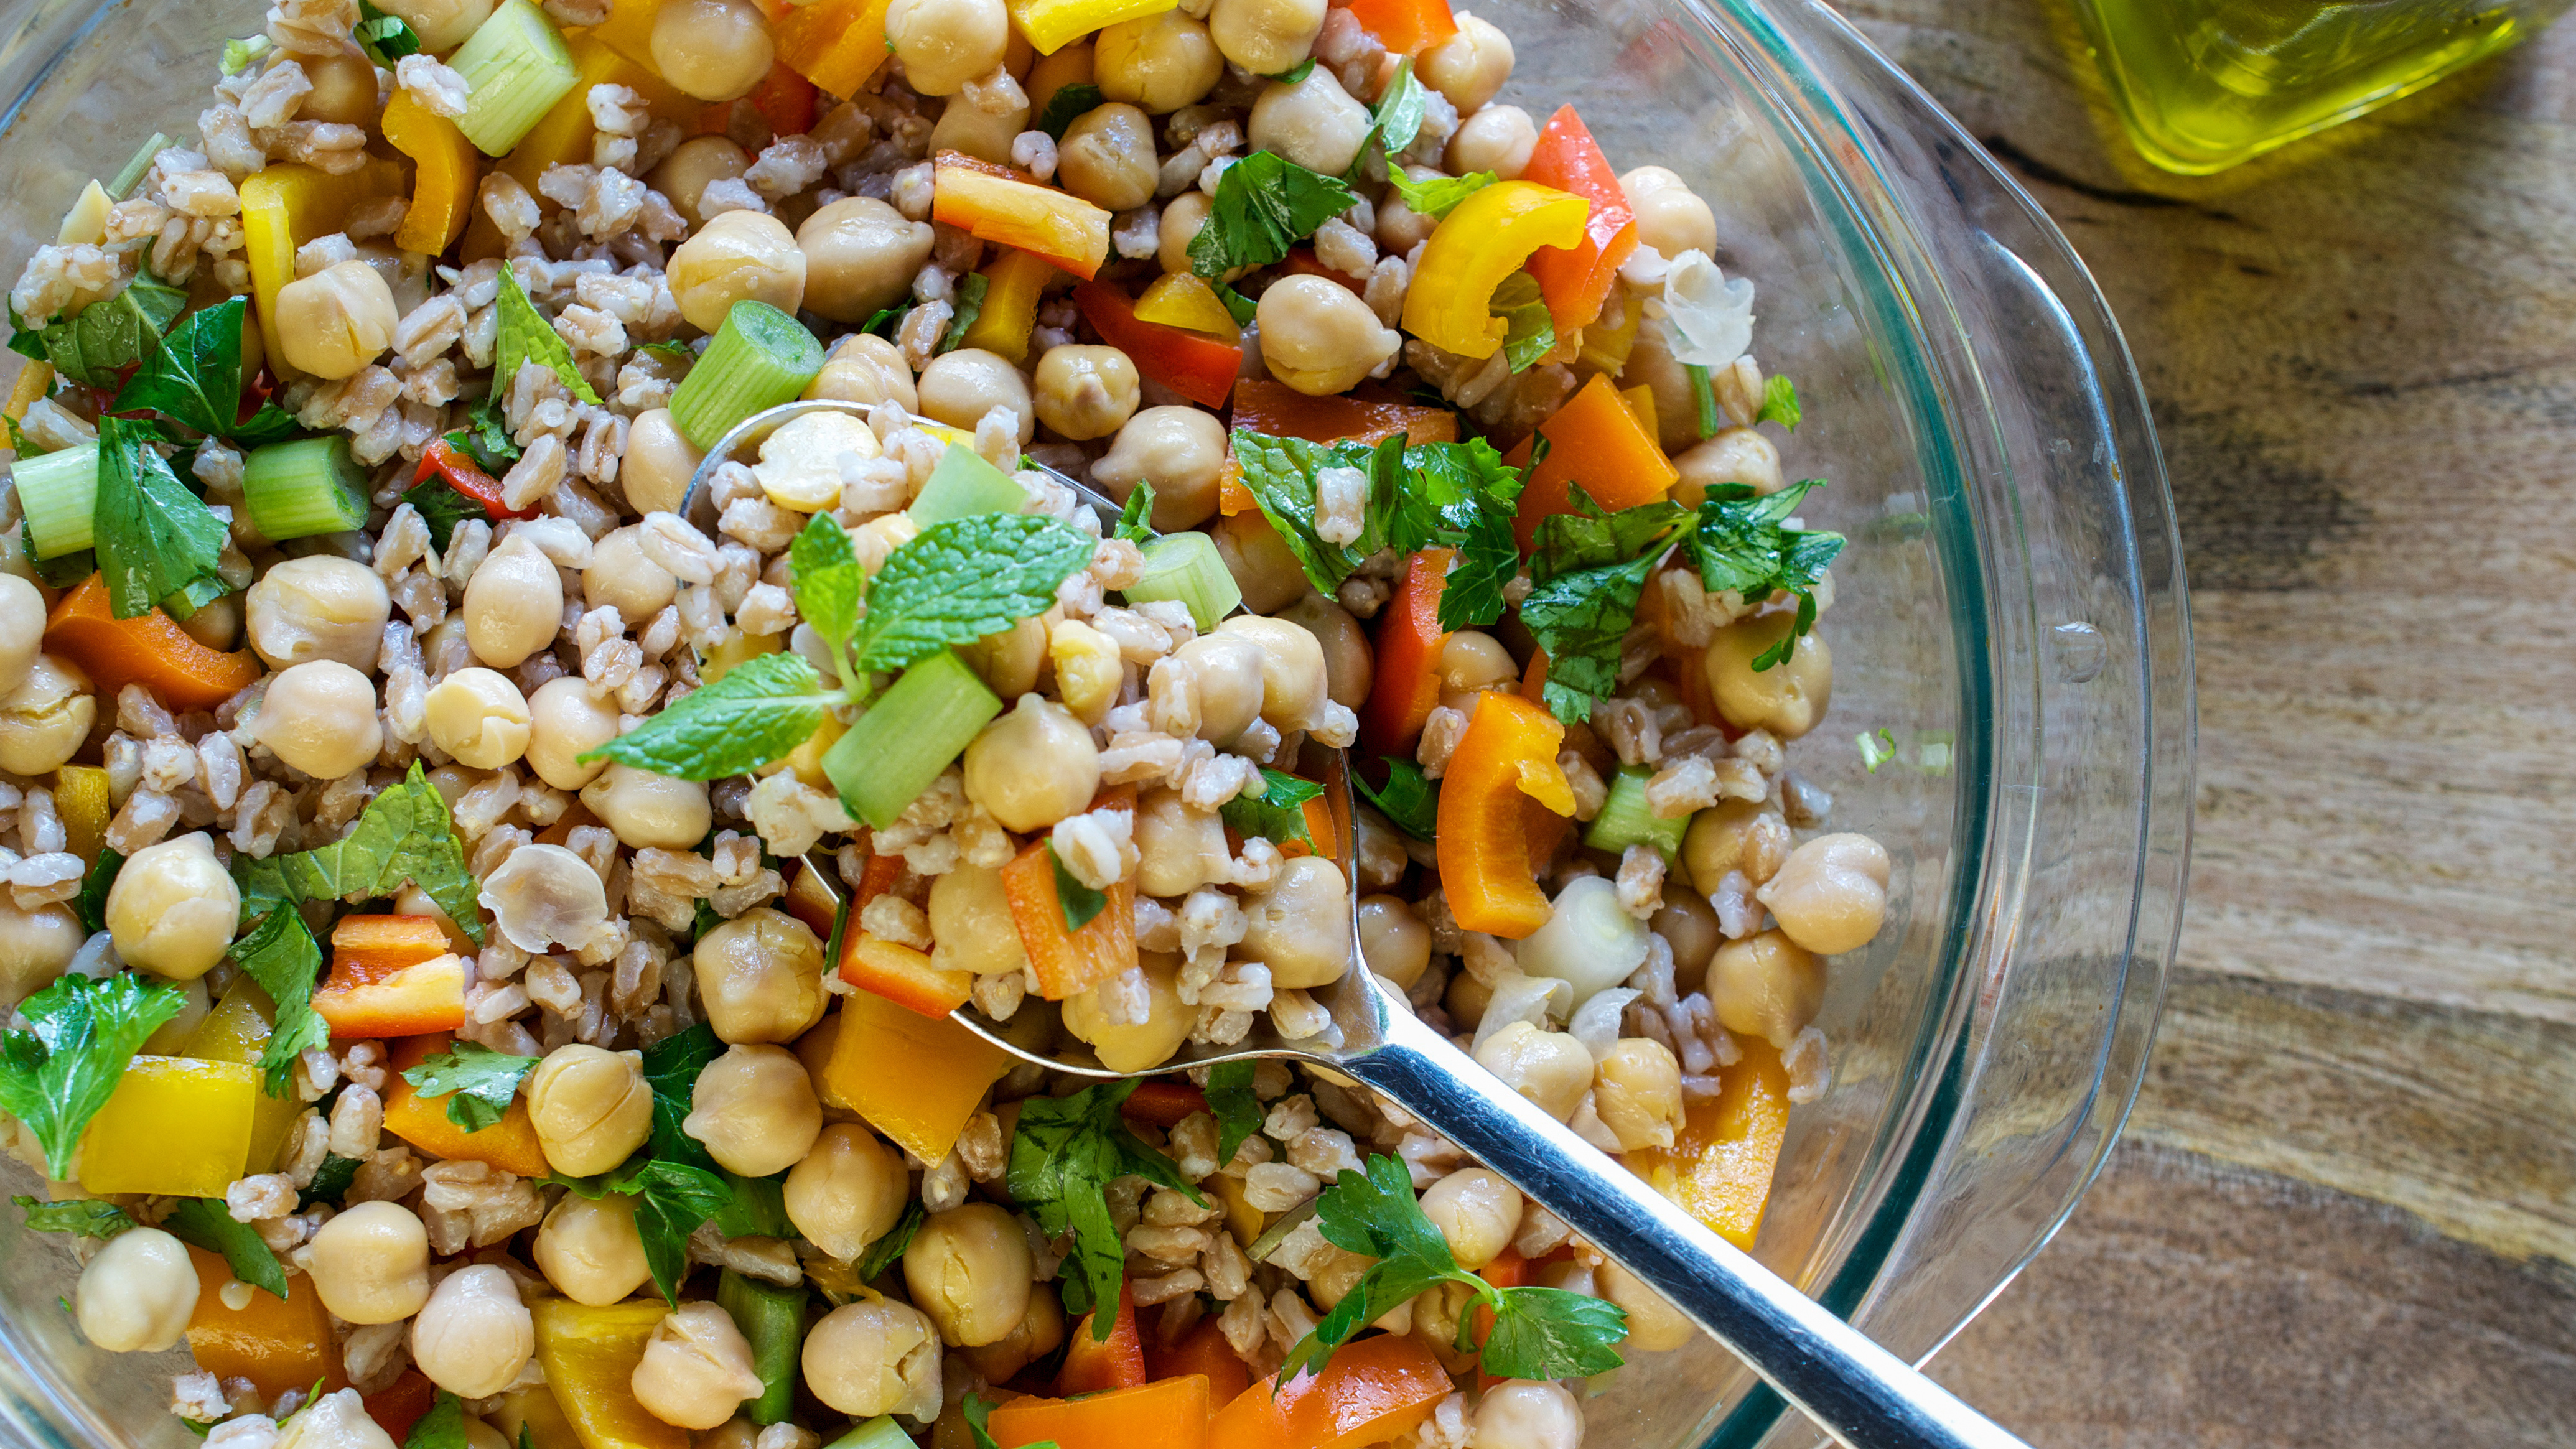 A salad consisting of farro, garbanzo beans, bell peppers, and spring onions served with olive oil on wooden table- healthy vegan eating concpet